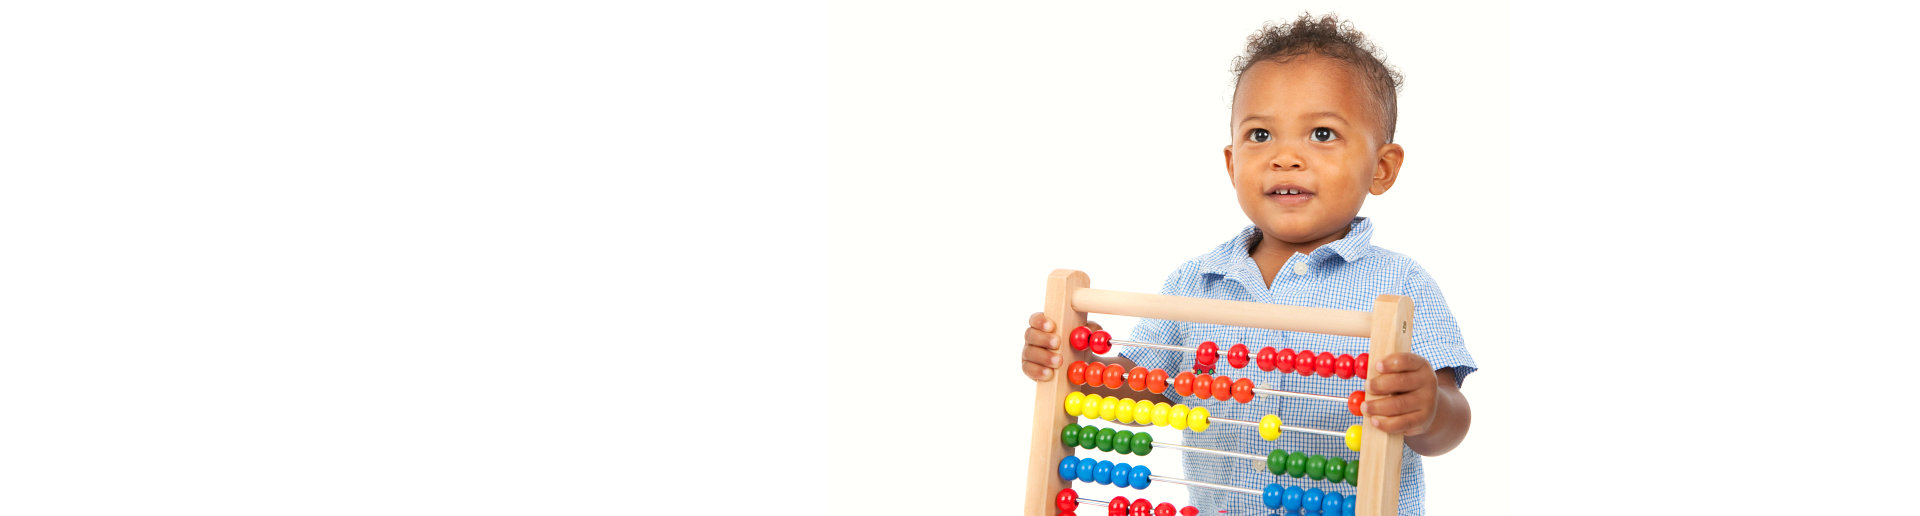 a boy holding an abacus